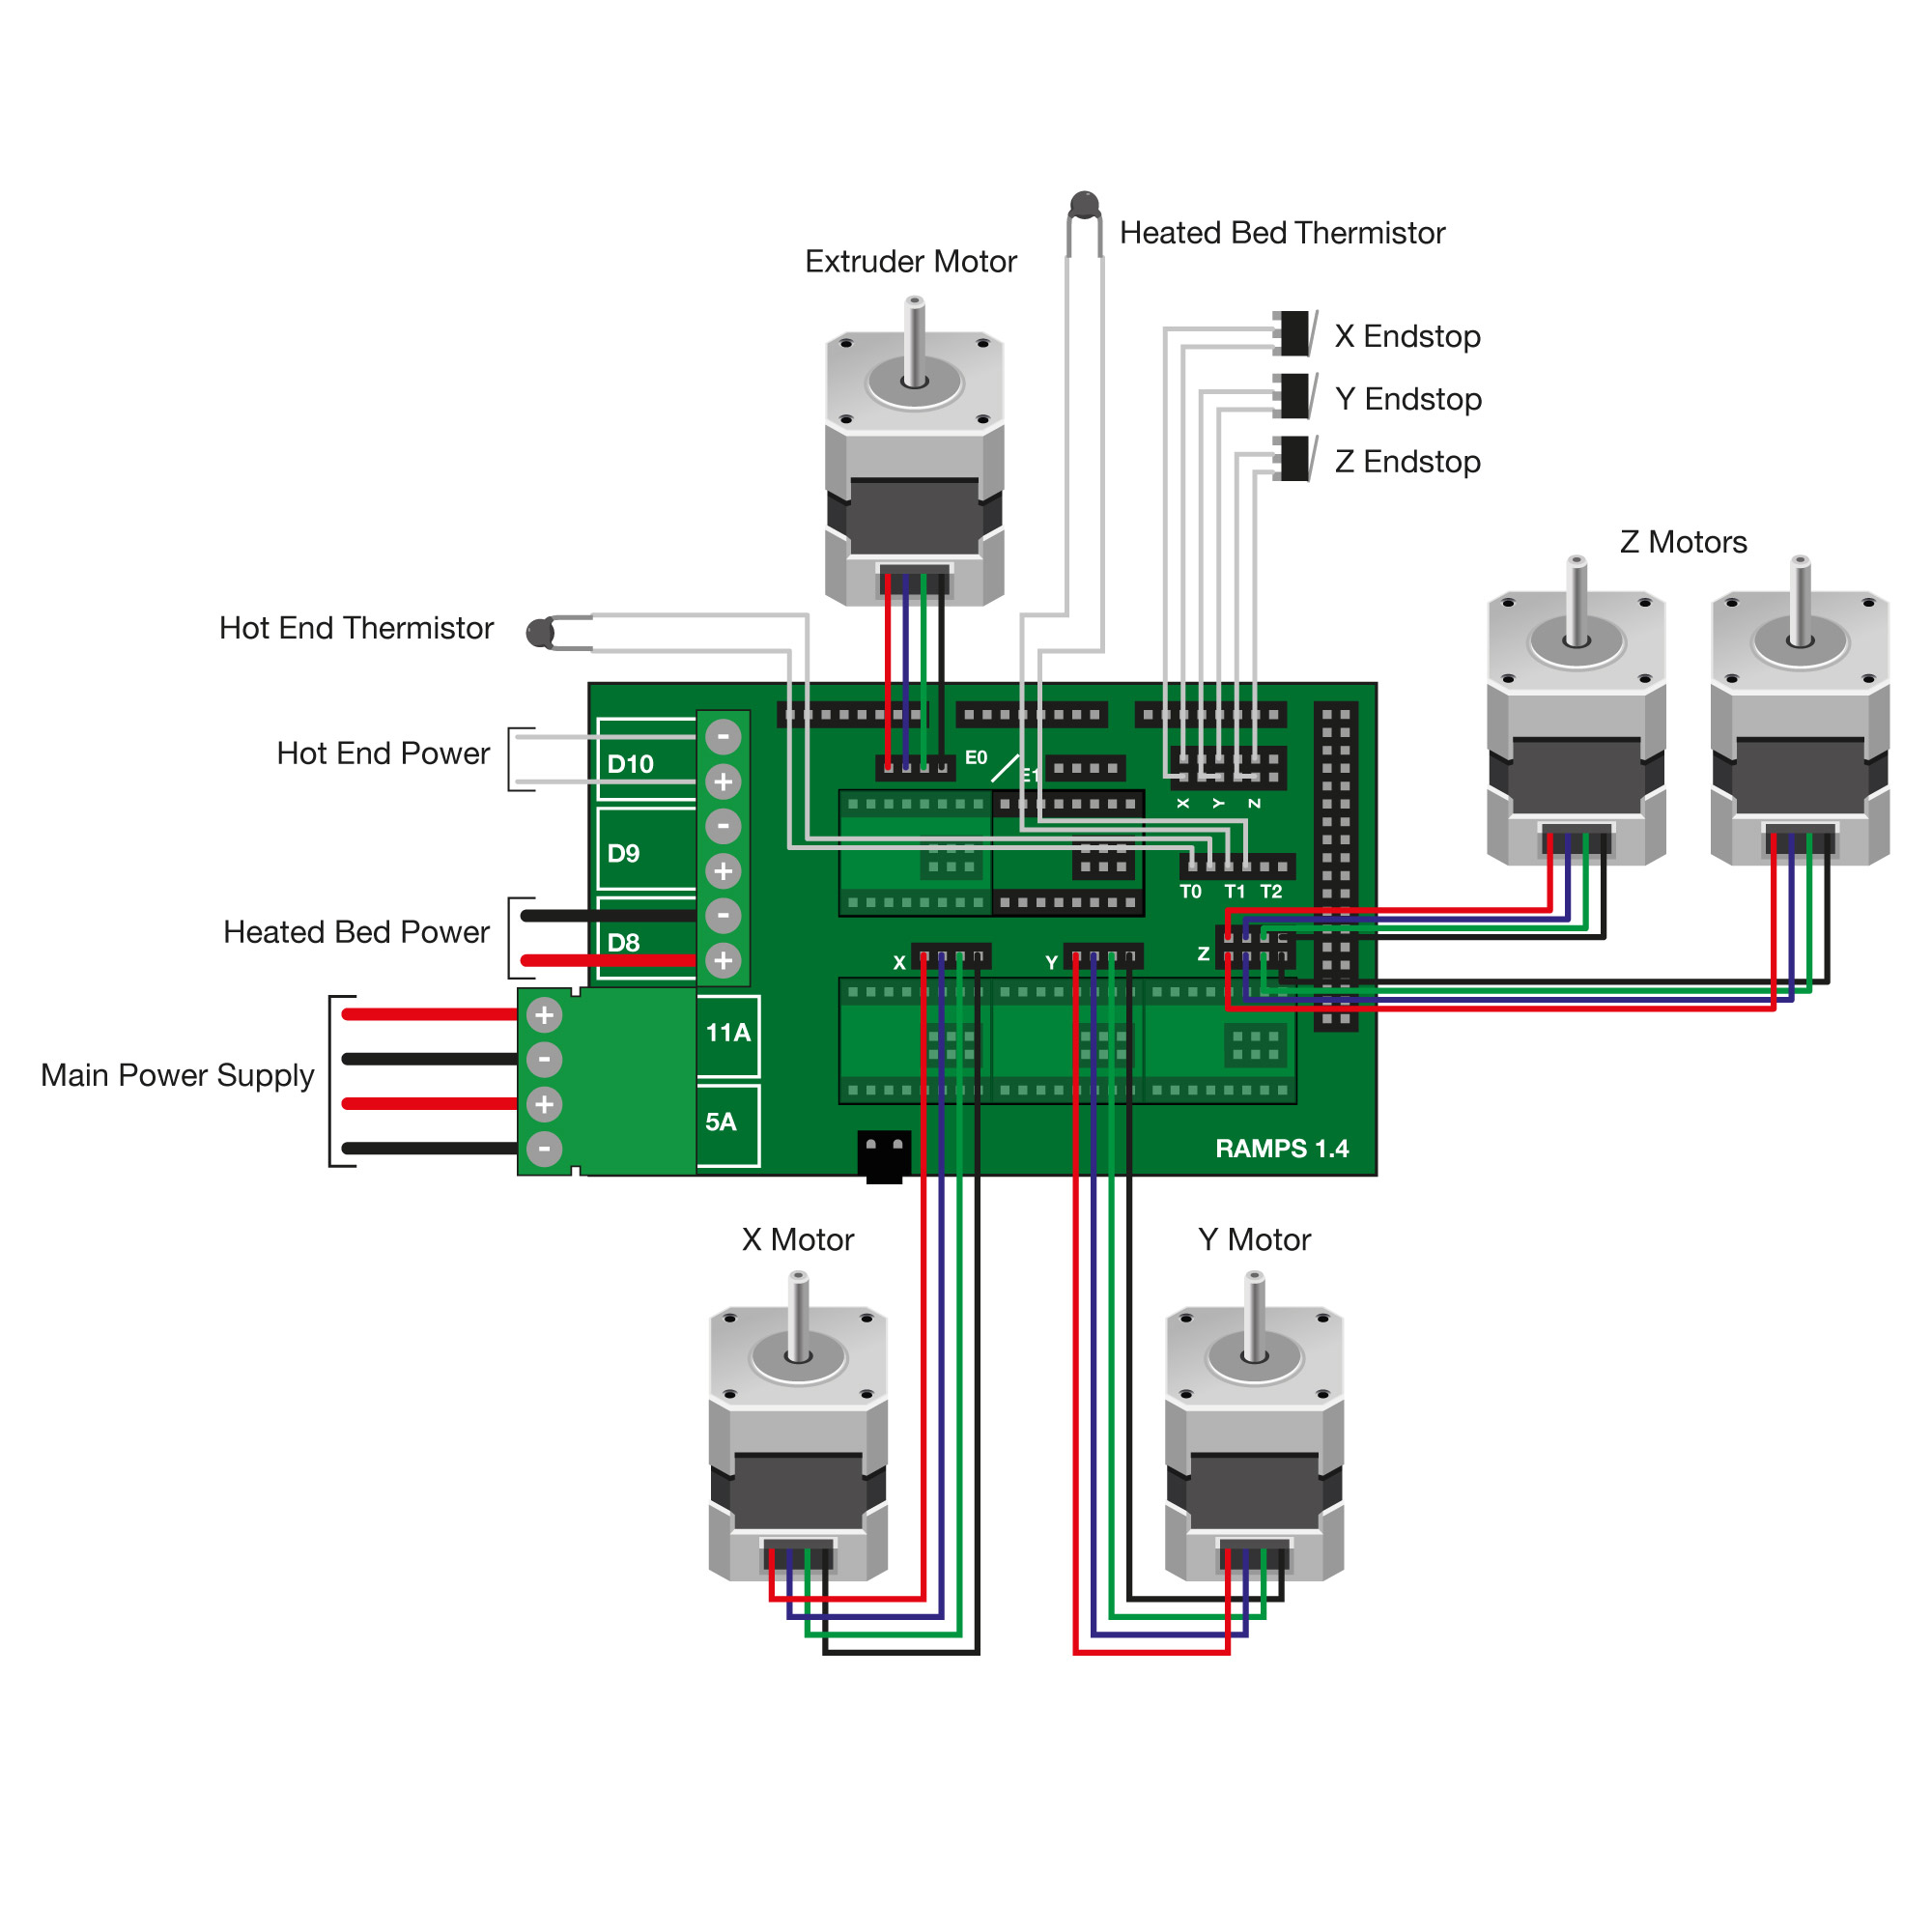 RAMPS Wiring Diagram